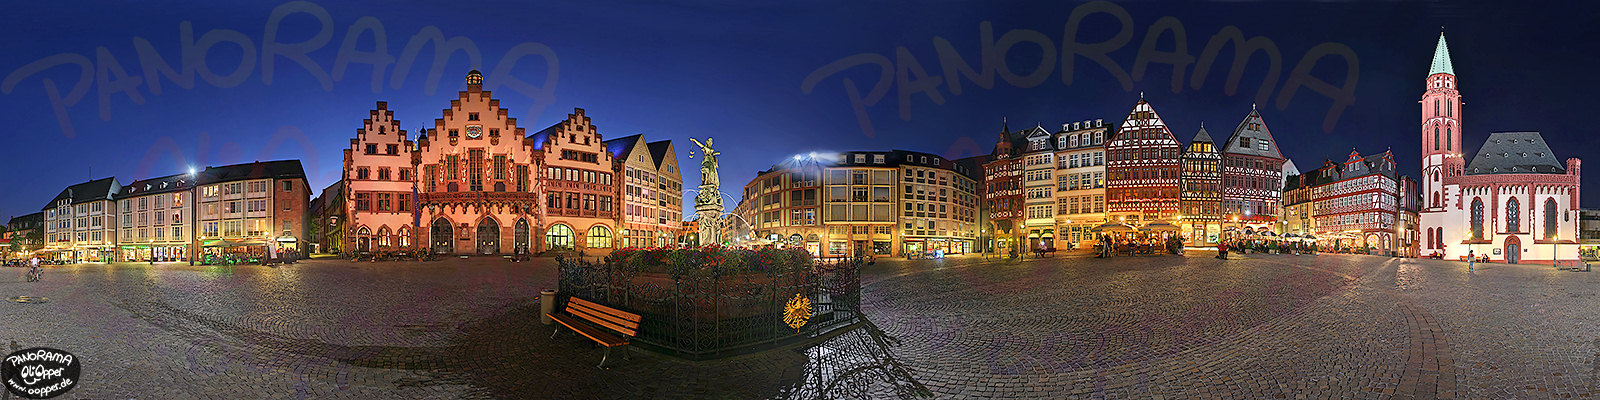 Panorama Frankfurt - R�mer - p075 - (c) by Oliver Opper